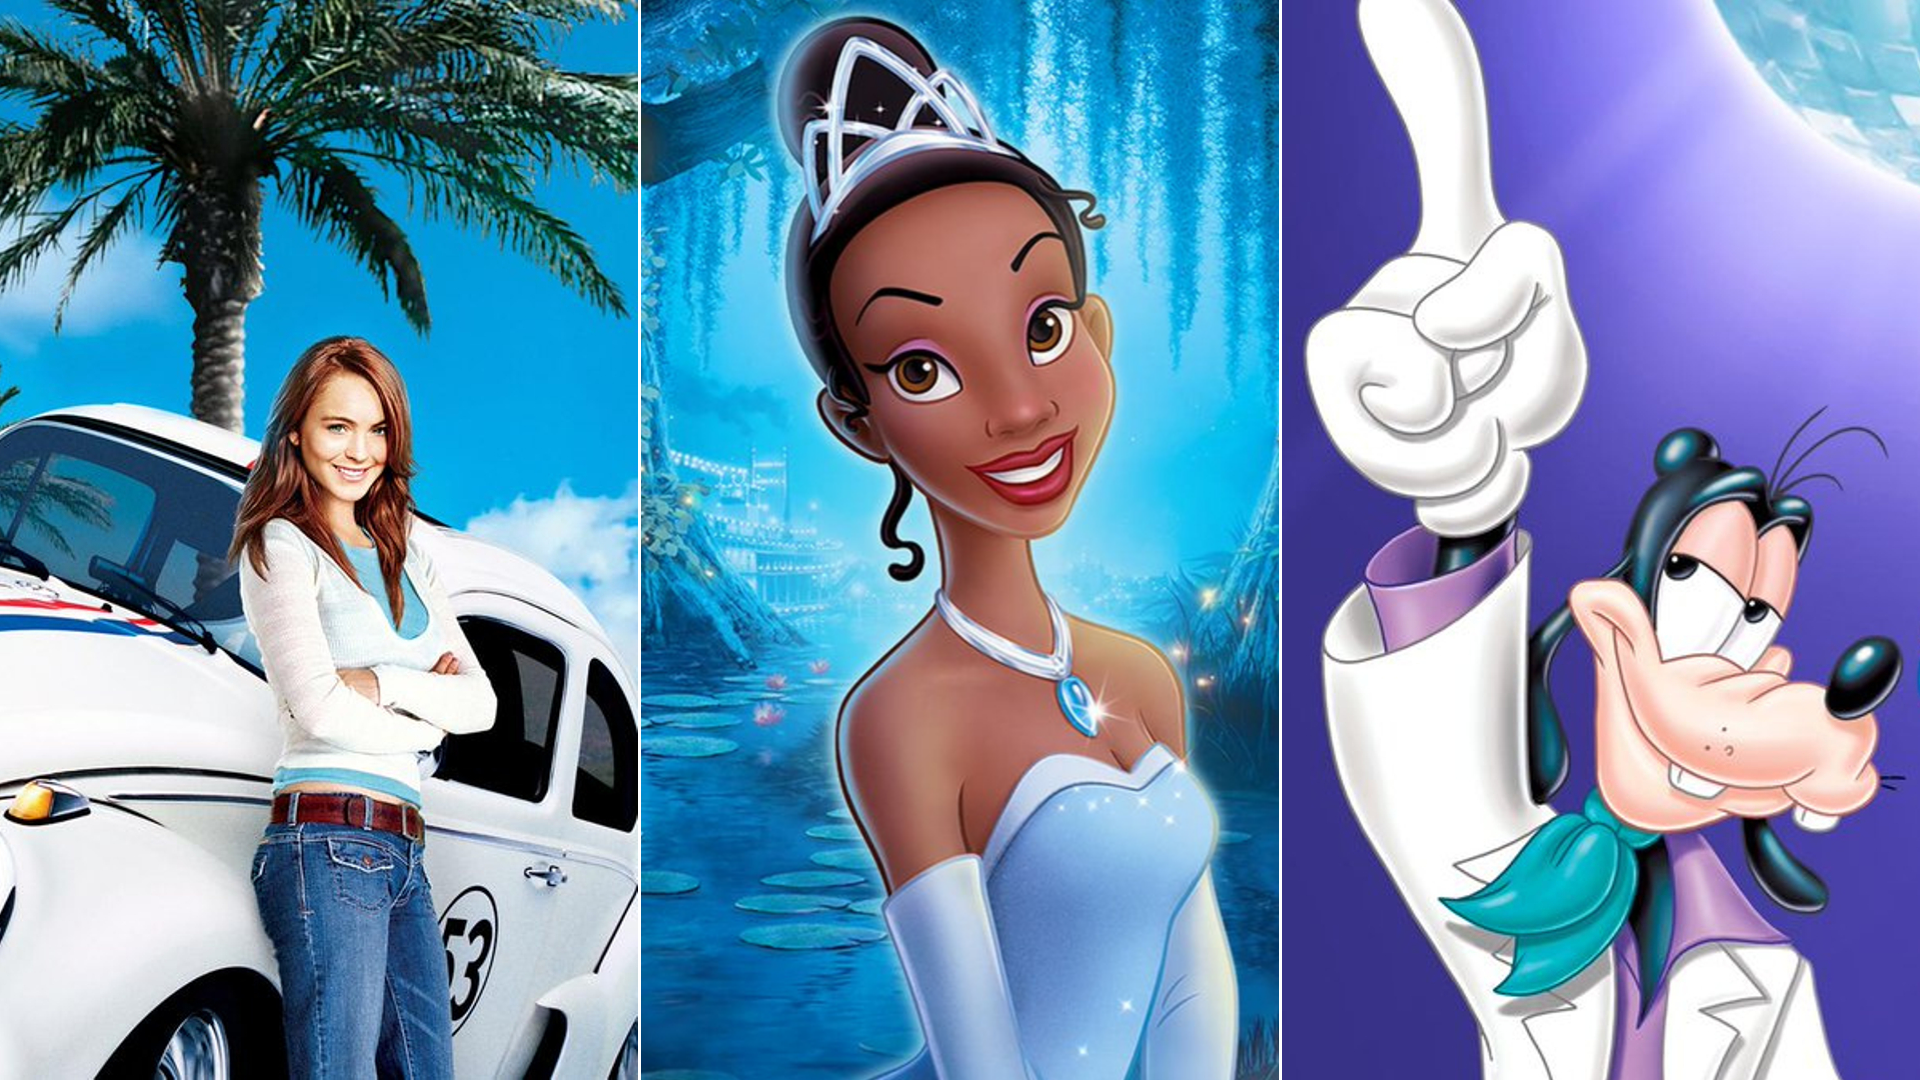 175 Movies Coming To Disney+ That Millennial Parents Will Love Watching With Their Kids